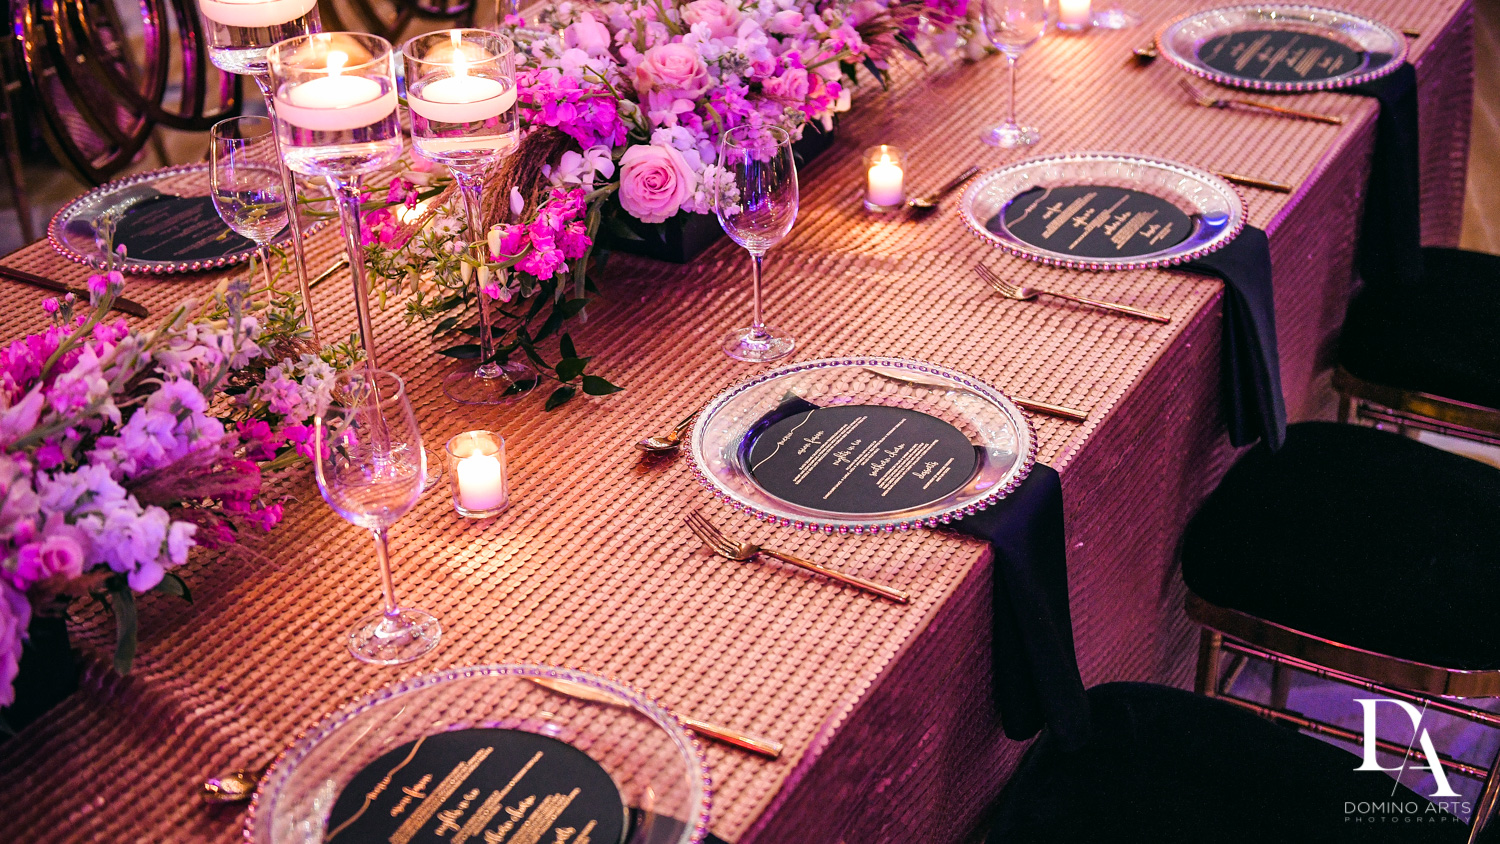 luxury table setting at Masquerade Ball Bat Mitzvah at Ritz Carlton Fort Lauderdale by Domino Arts Photography